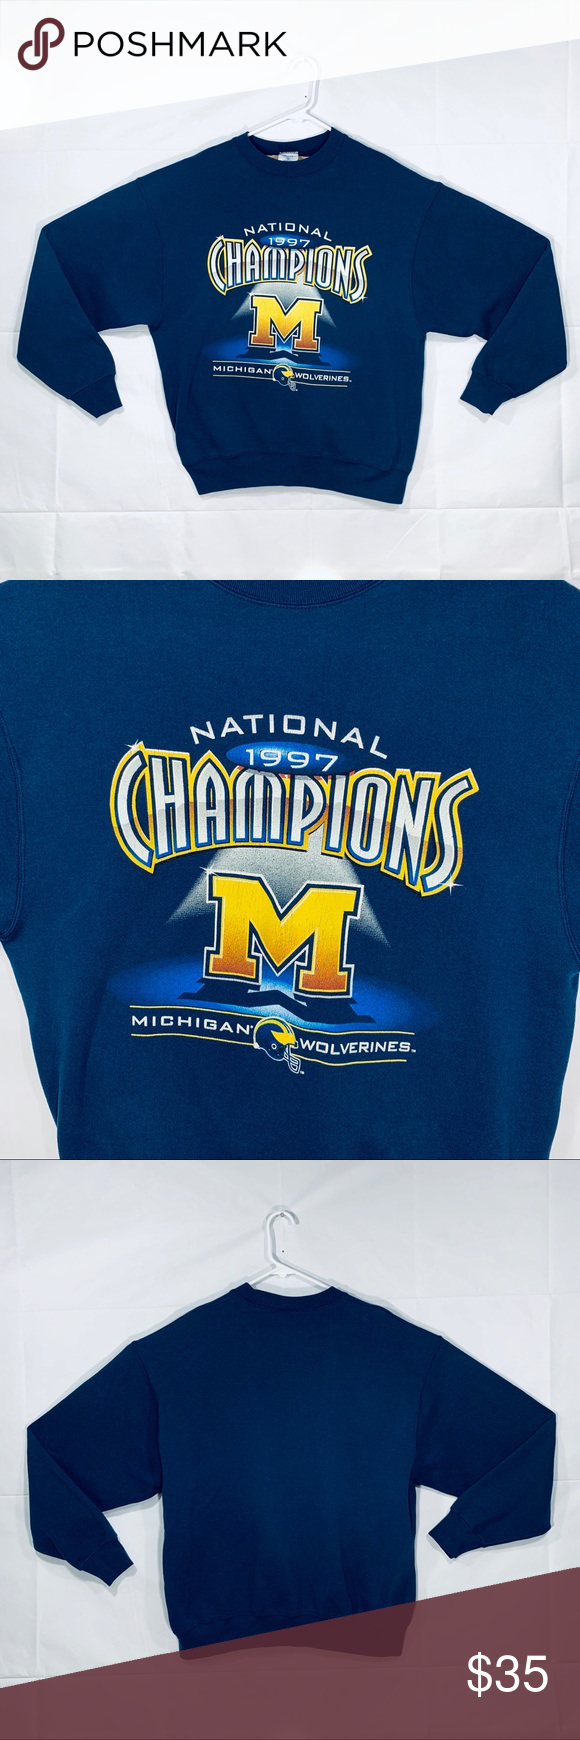 Michigan Wolverines Champions Crewneck Size Xl Condition Good Lettering Has Some Cracking No Stains On Sweatshirt T Sweater Layering Sweatshirts Crew Neck [ 1740 x 580 Pixel ]